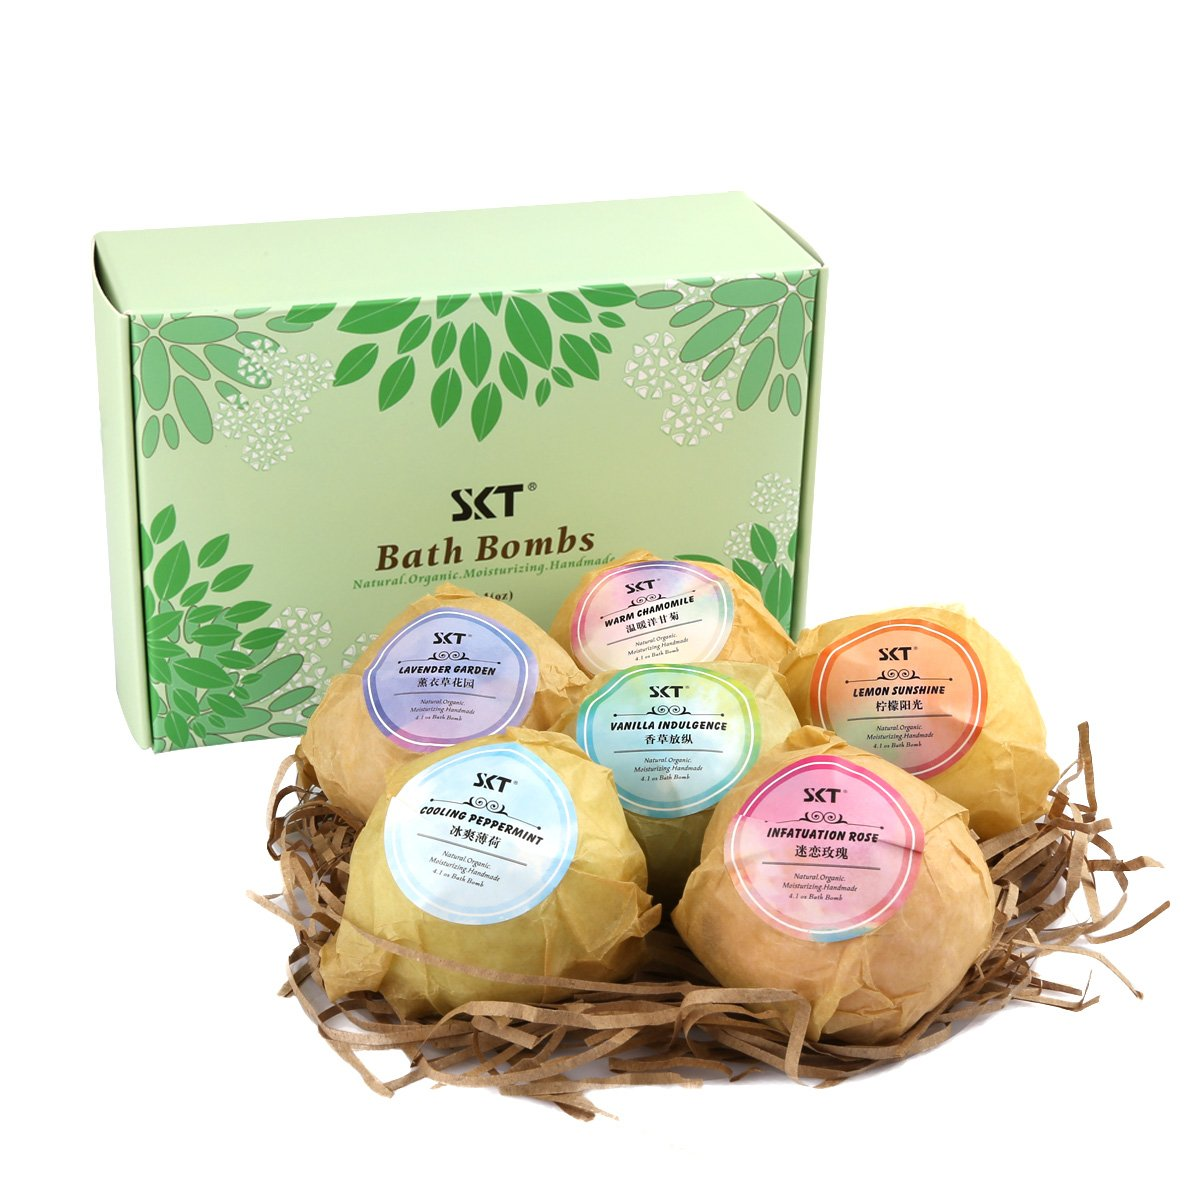 Bath Bombs Fizzies Gift Set 6Pcs for Aromatherapy Bubble & Spa, Fizzing Vegan Bath Bomb Balls contains Natural Essential Oil for Moisturizing Normal/Dry Skin - 6 Fragrances AntArt